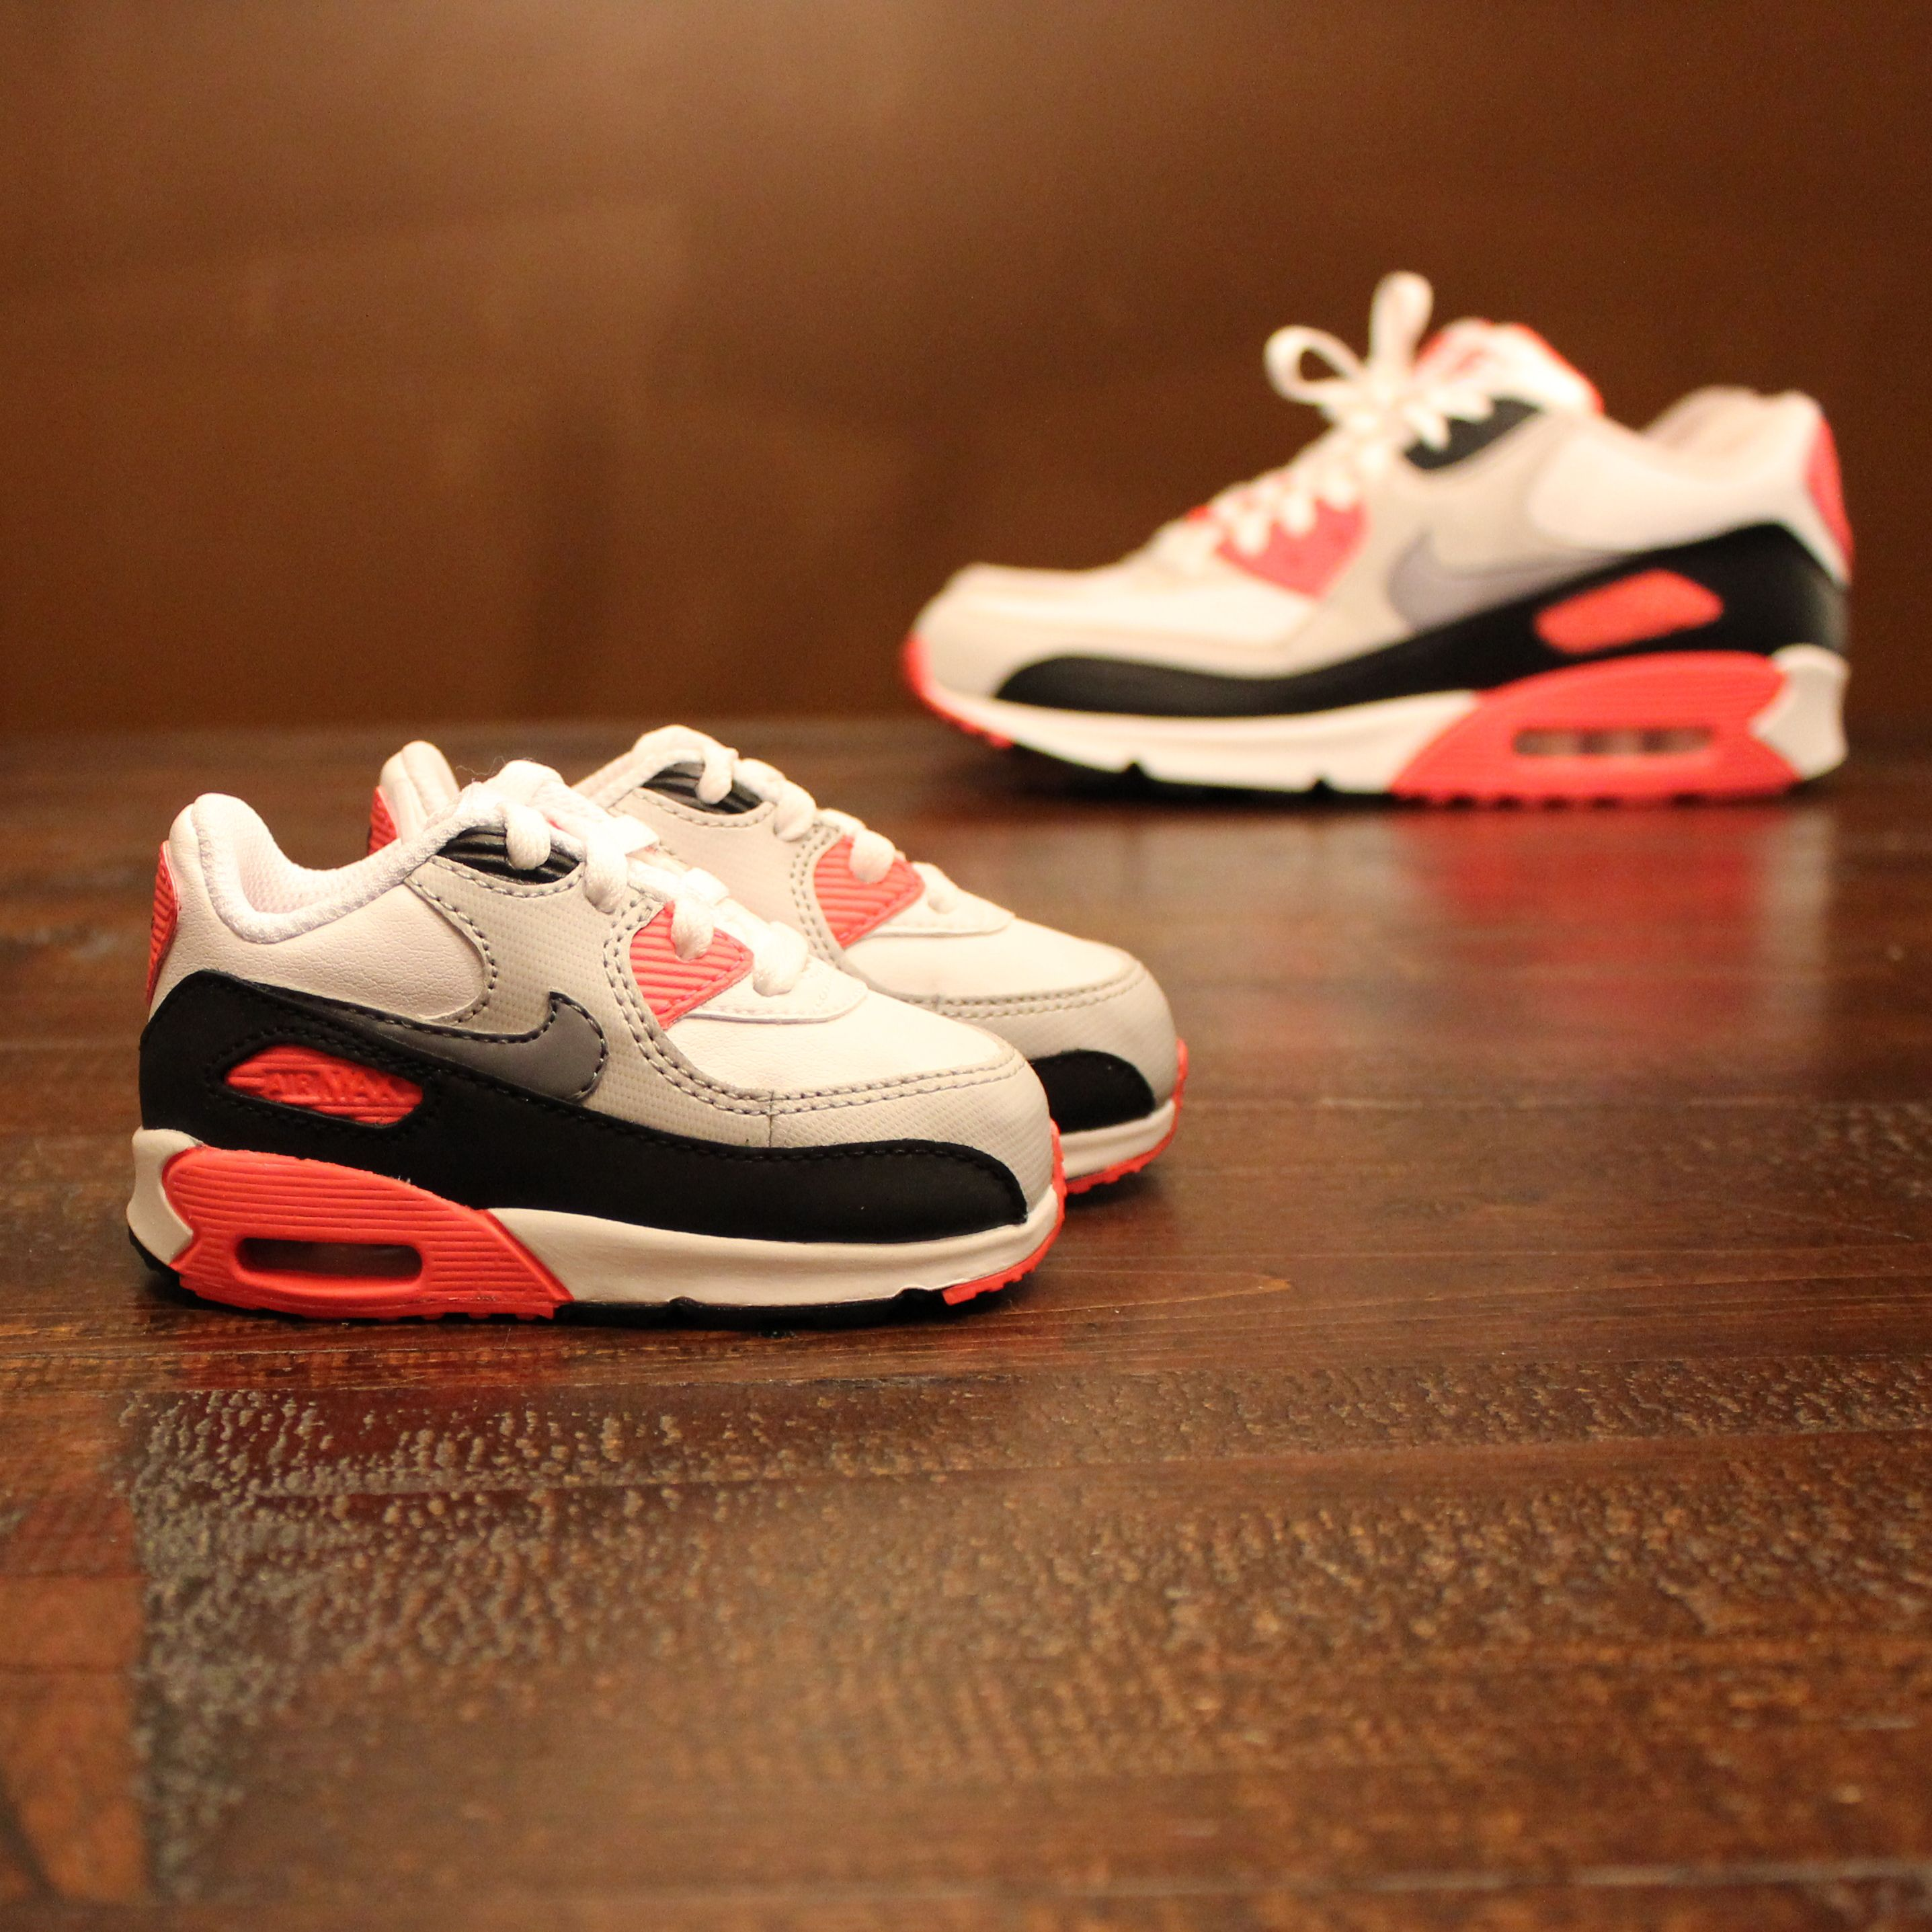 Baby Nike Air Max 90 Infra reds Finally gonna have someone